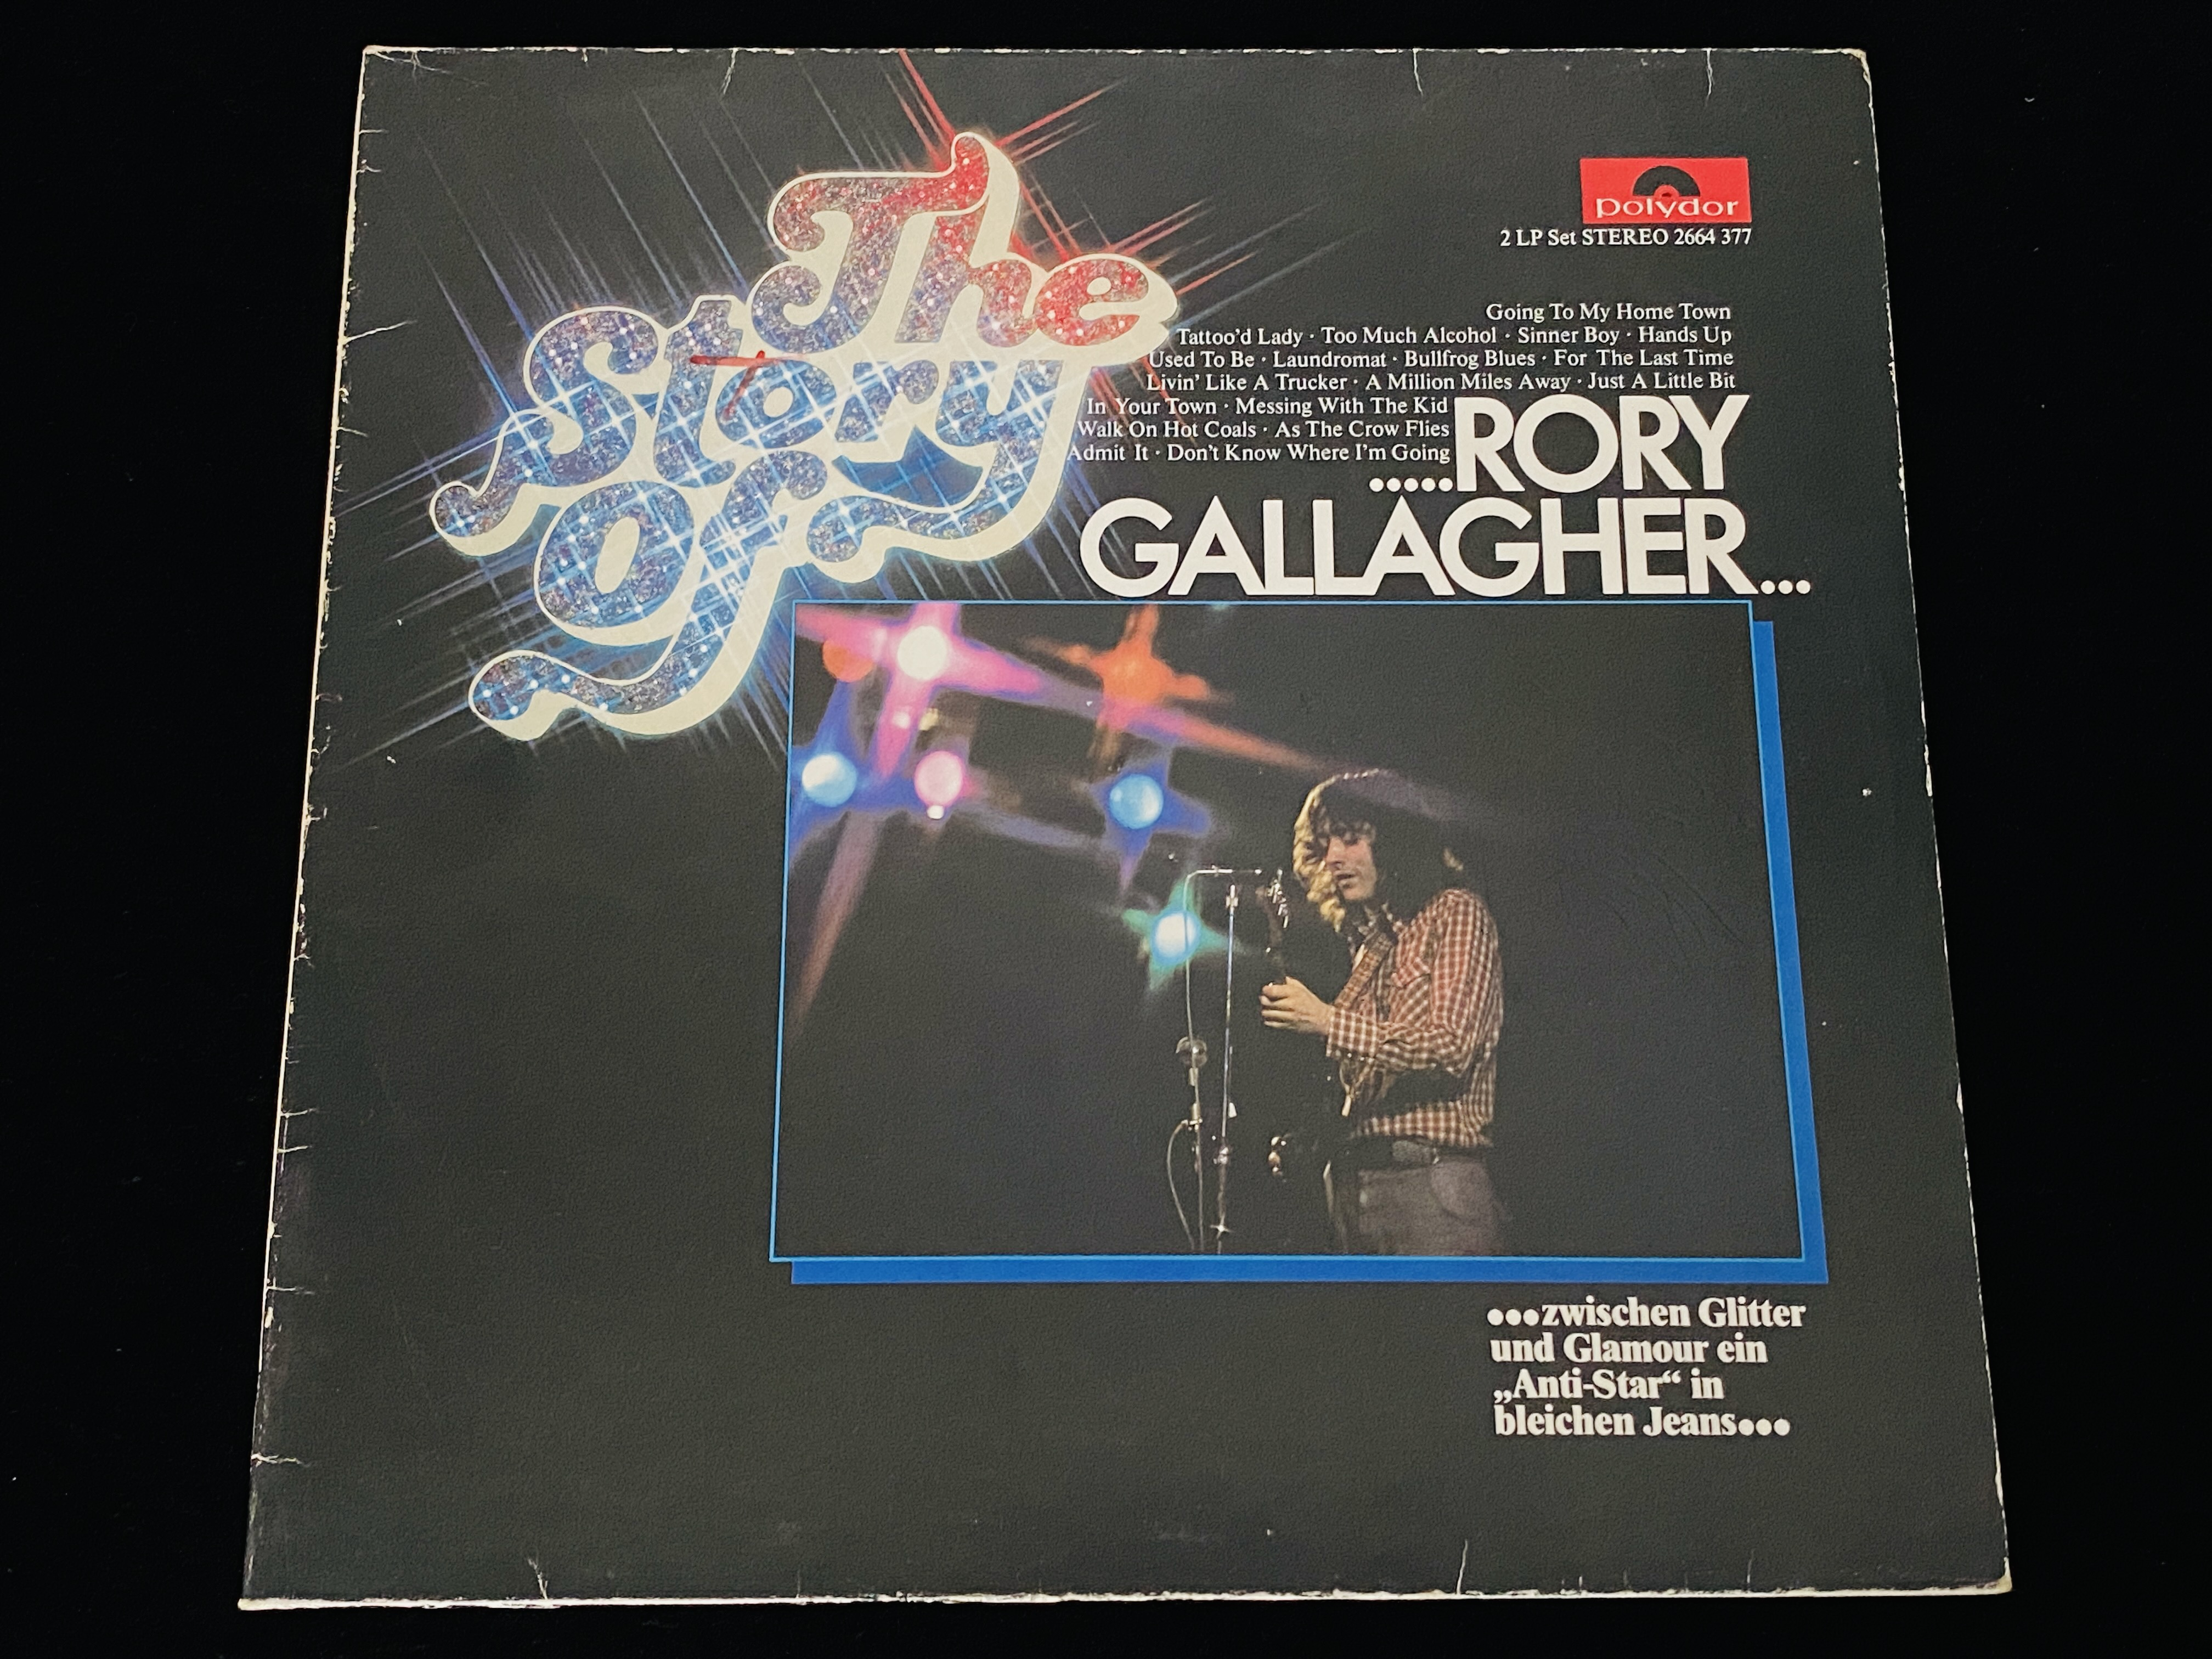 Rory Gallagher - The Story of... Rory Gallagher (DE, 1977)